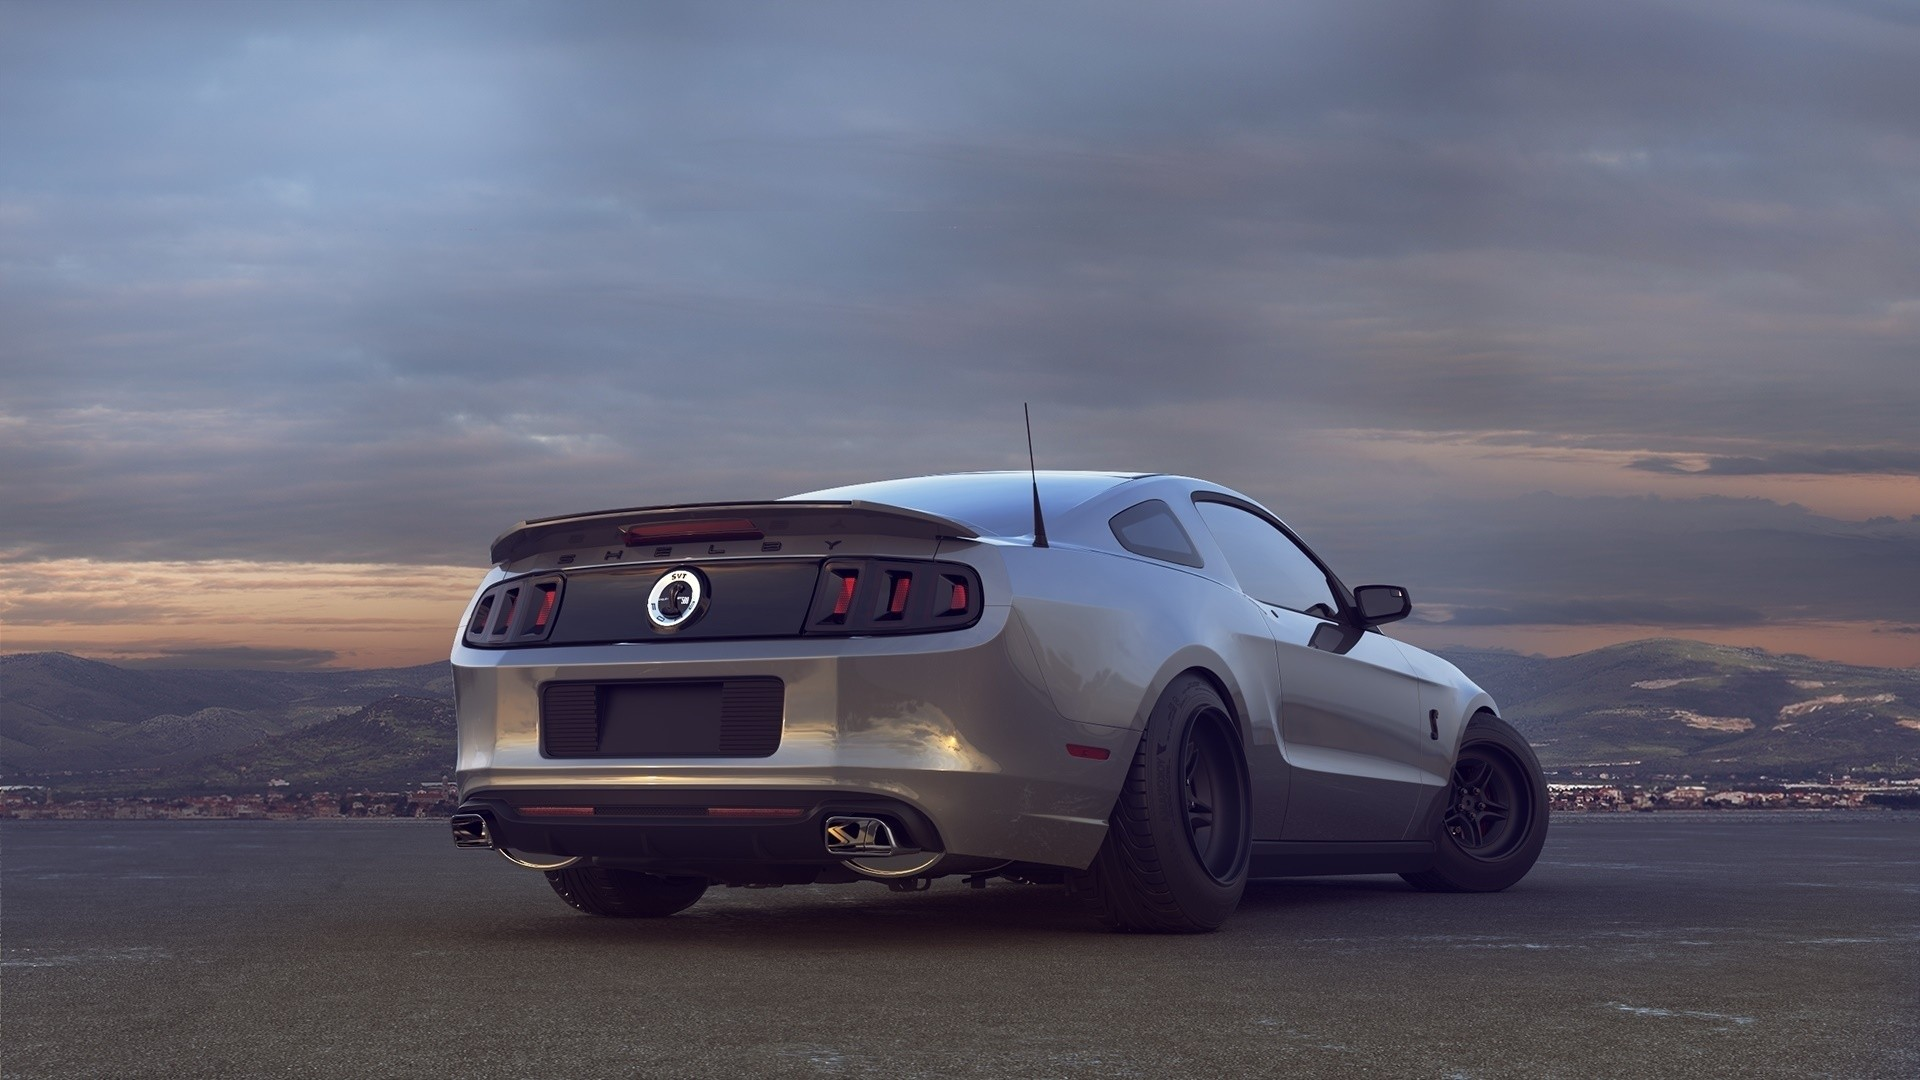 Res: 1920x1080, Shelby Car Gt 500 Mustang Drag Ford 4k Ultra HD Wallpaper